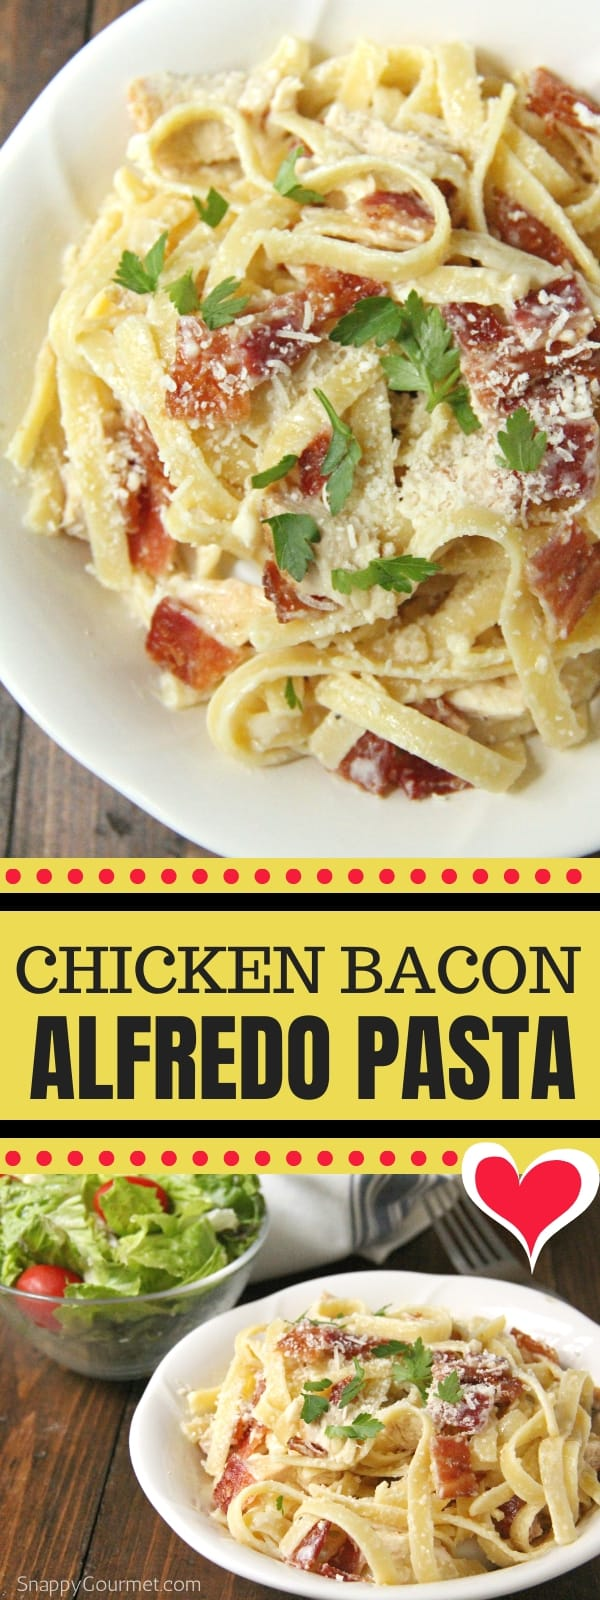 Chicken Bacon Alfredo Pasta collage